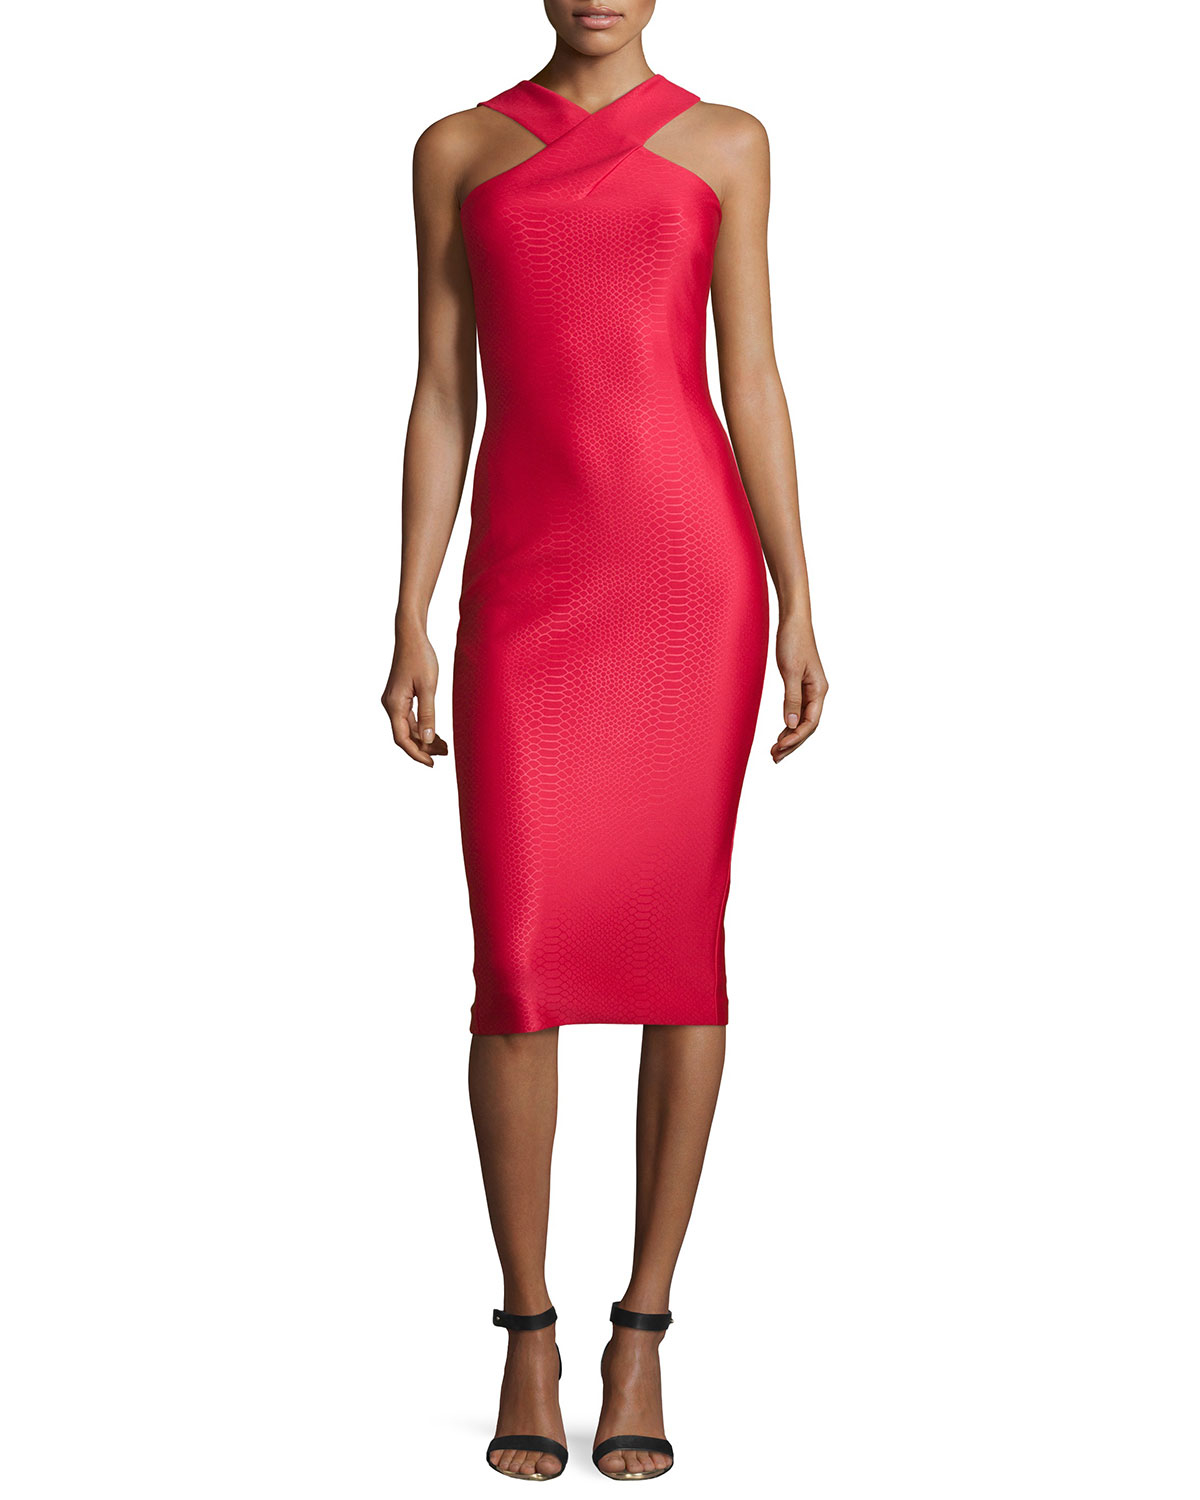 3c7165181974a Ted Baker Erskine Snake-embossed Sheath Dress in Red - Lyst